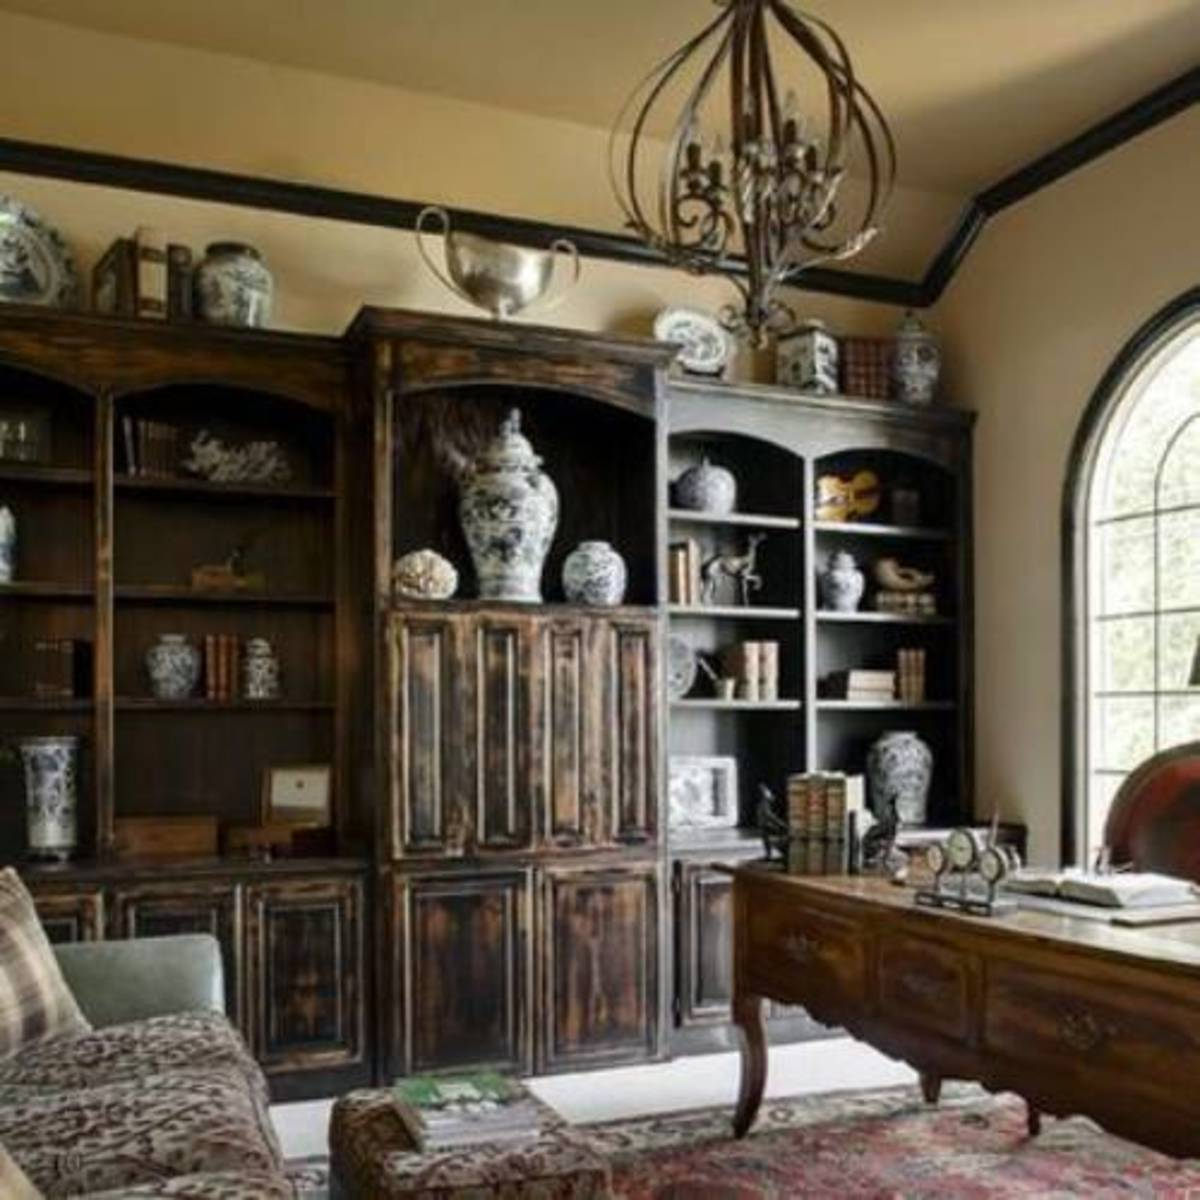 Beautiful accessories and lighting in a Tuscan home library.